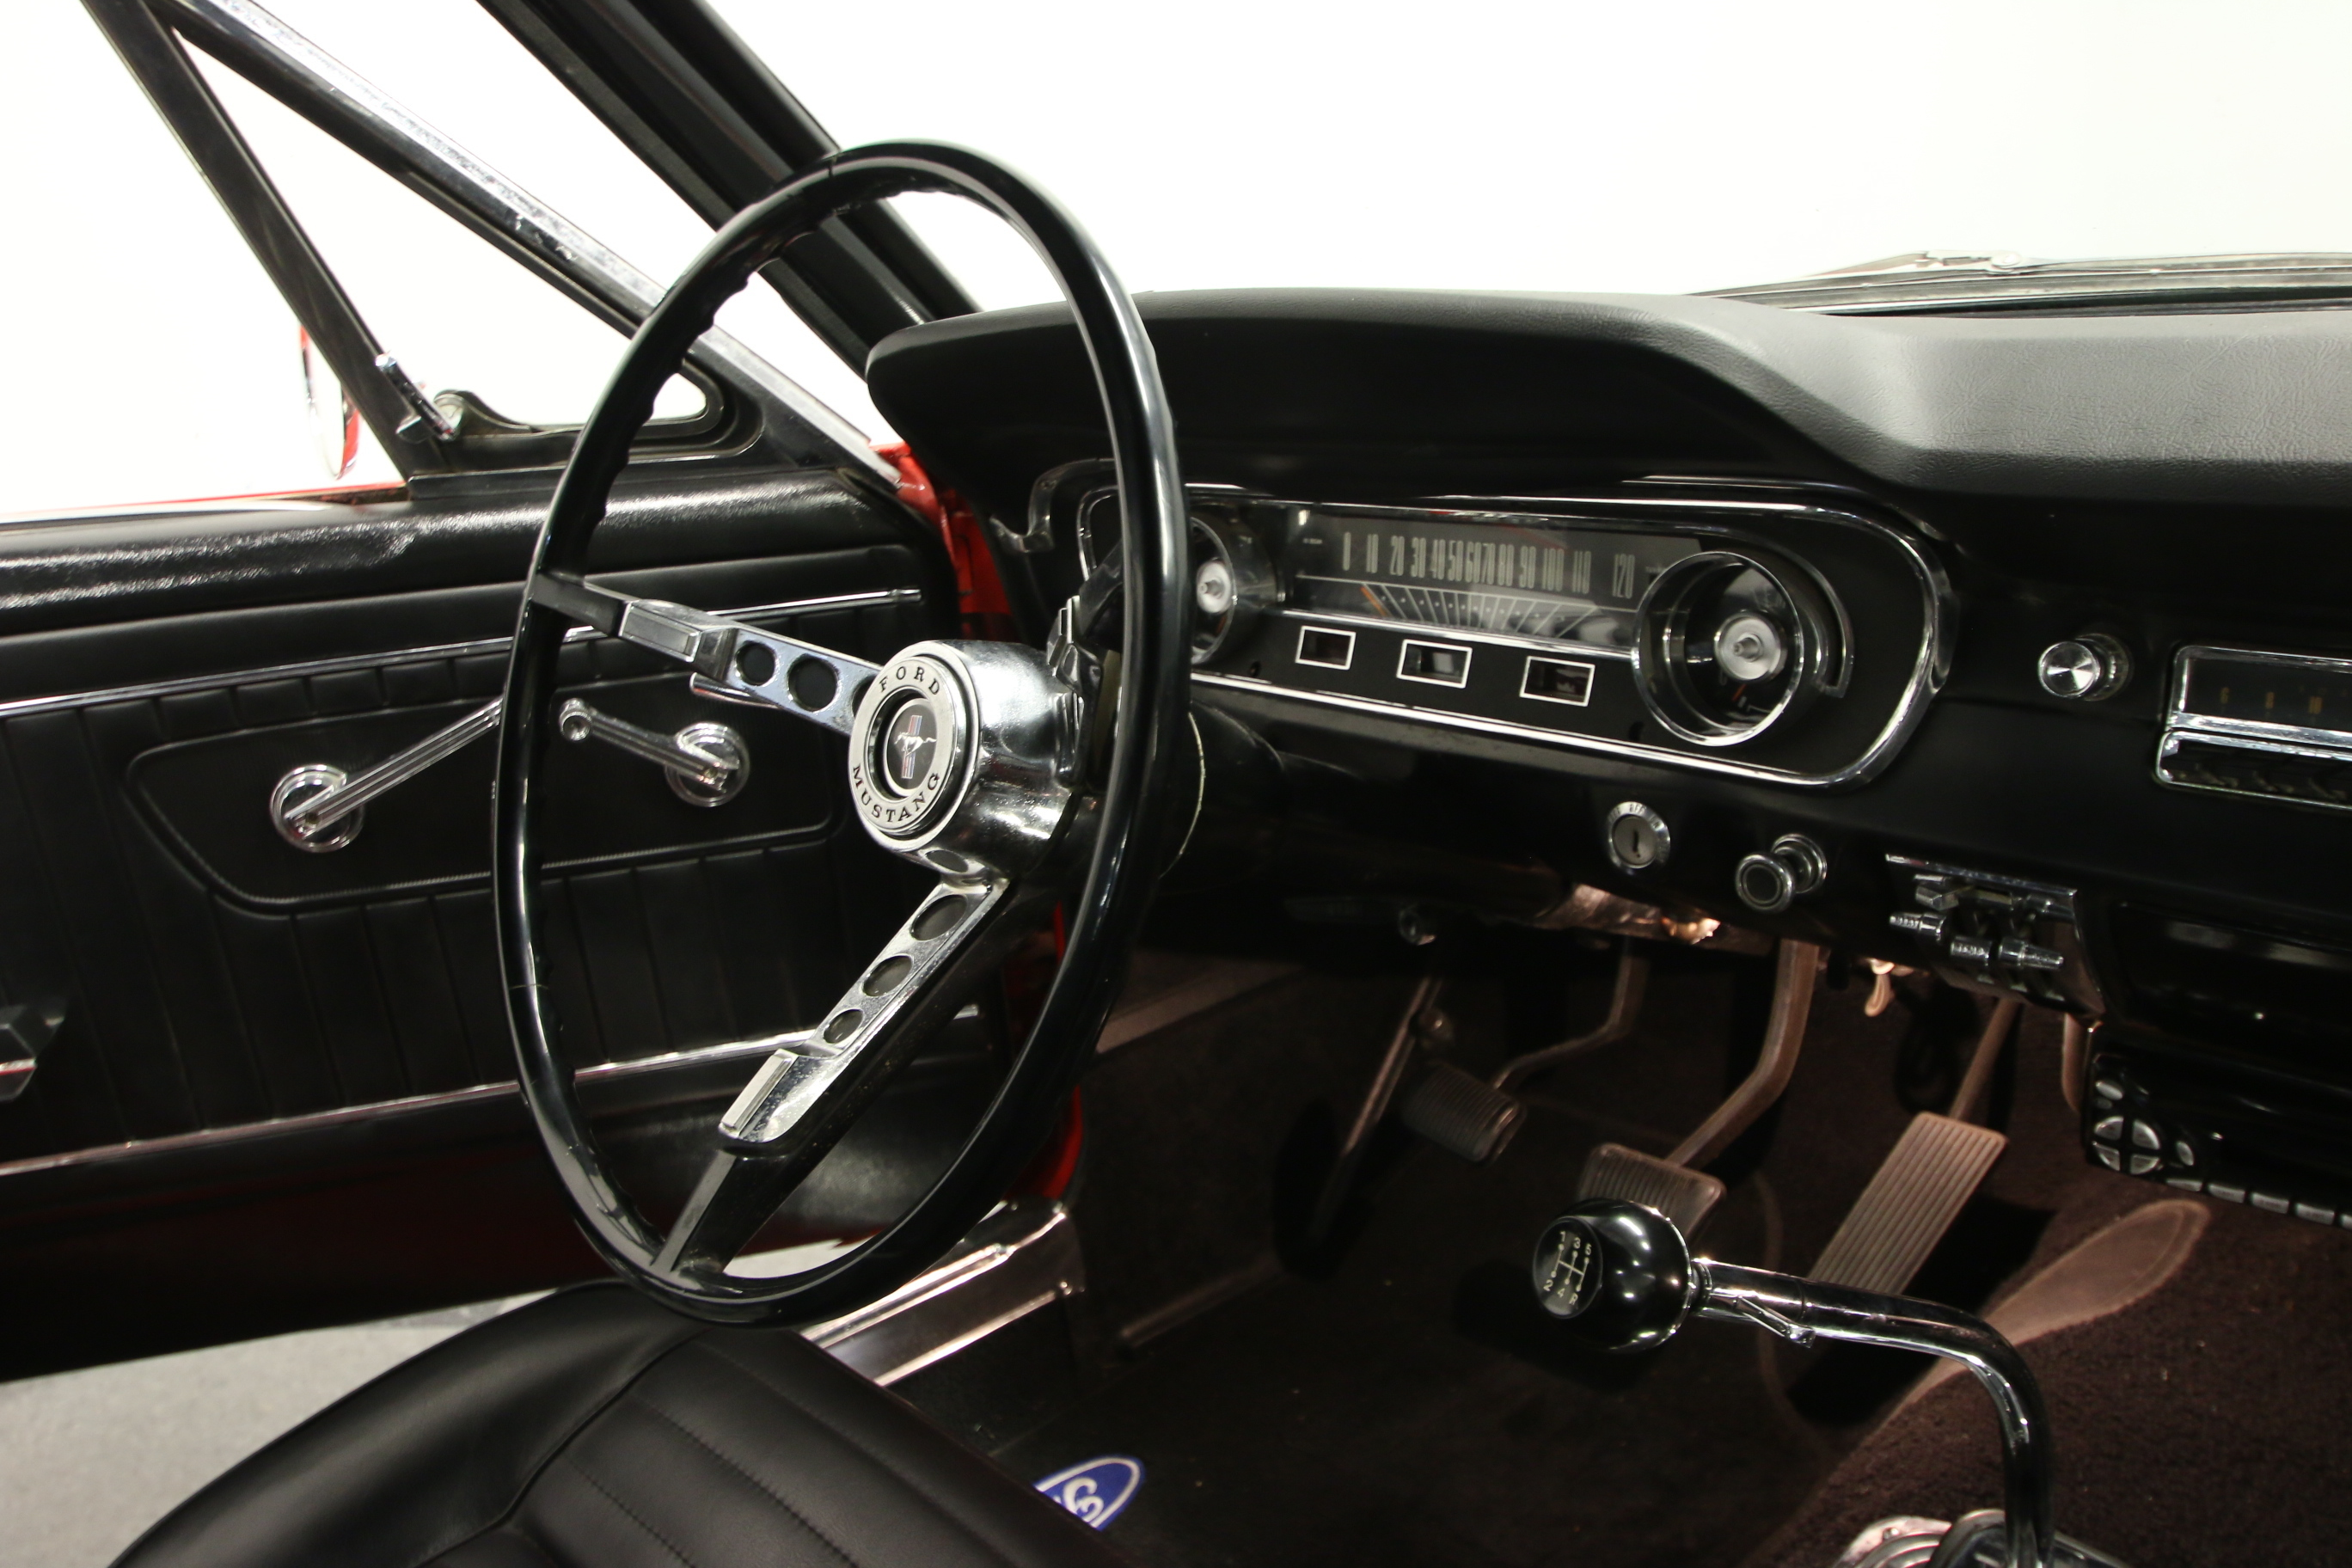 1965 Ford Mustang : RARE 65 C-CODE, RARE BENCH SEAT, 5 SPEED MANUAL, 289 V8, TASTEFUL SHELBY UPDATES